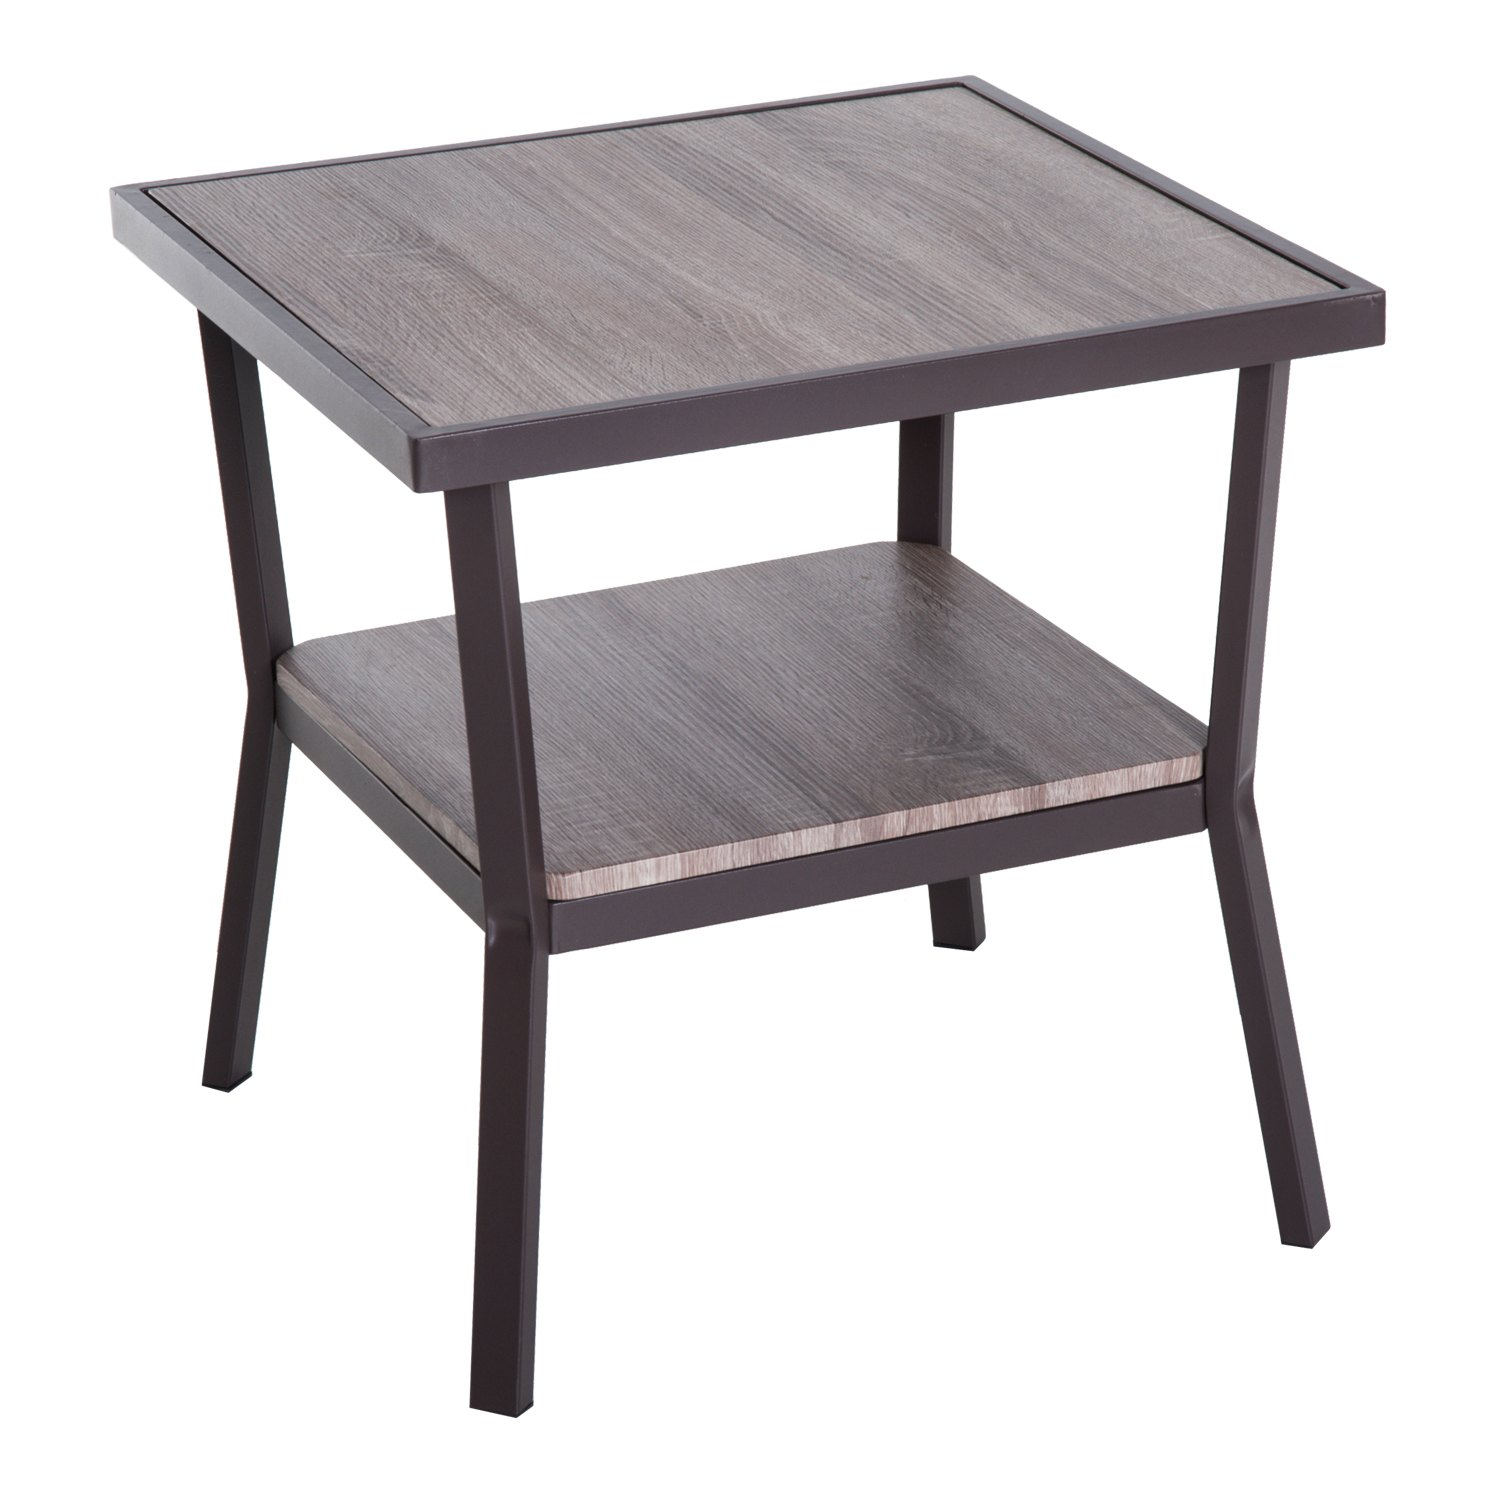 aosom homcom rustic industrial minimal two tier wooden accent end light wood table brown woodgrain uttermost samuelle bunnings outdoor seating kitchen ashley signature coffee ikea